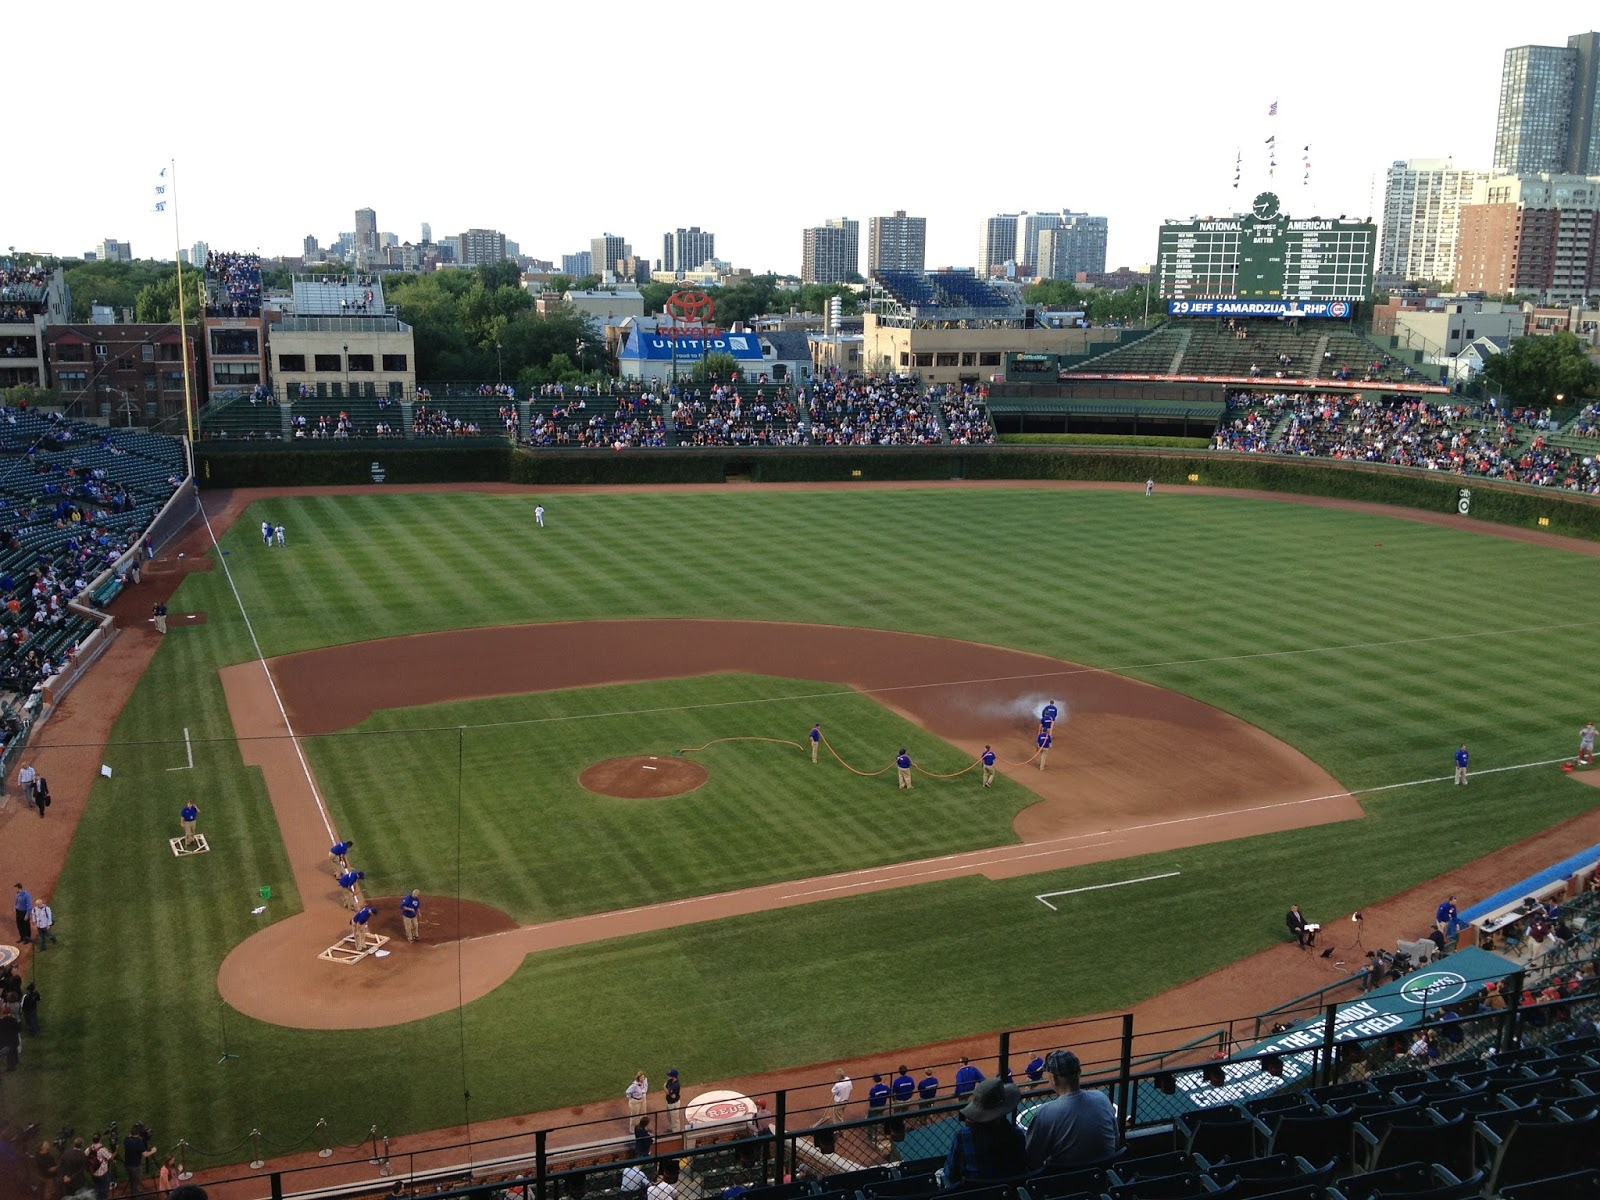 wrigley personals Press to search craigslist save search options close apts/housing for rent search titles only has image posted today bundle duplicates miles .